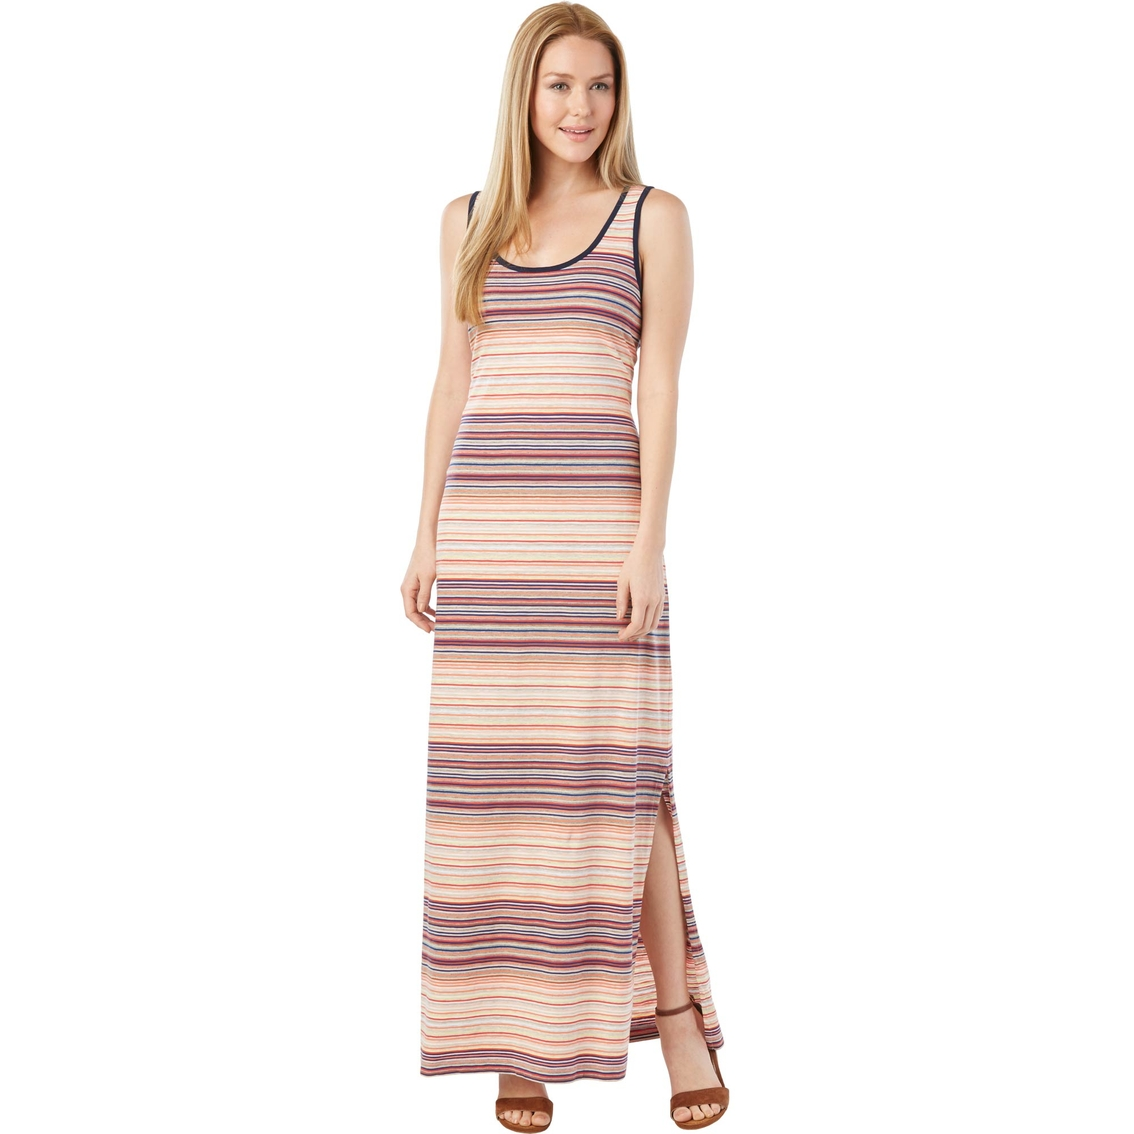 5655d83f0b8 Tommy Hilfiger Tenny Multi Feeder Stripe Maxi Dress | Dresses ...